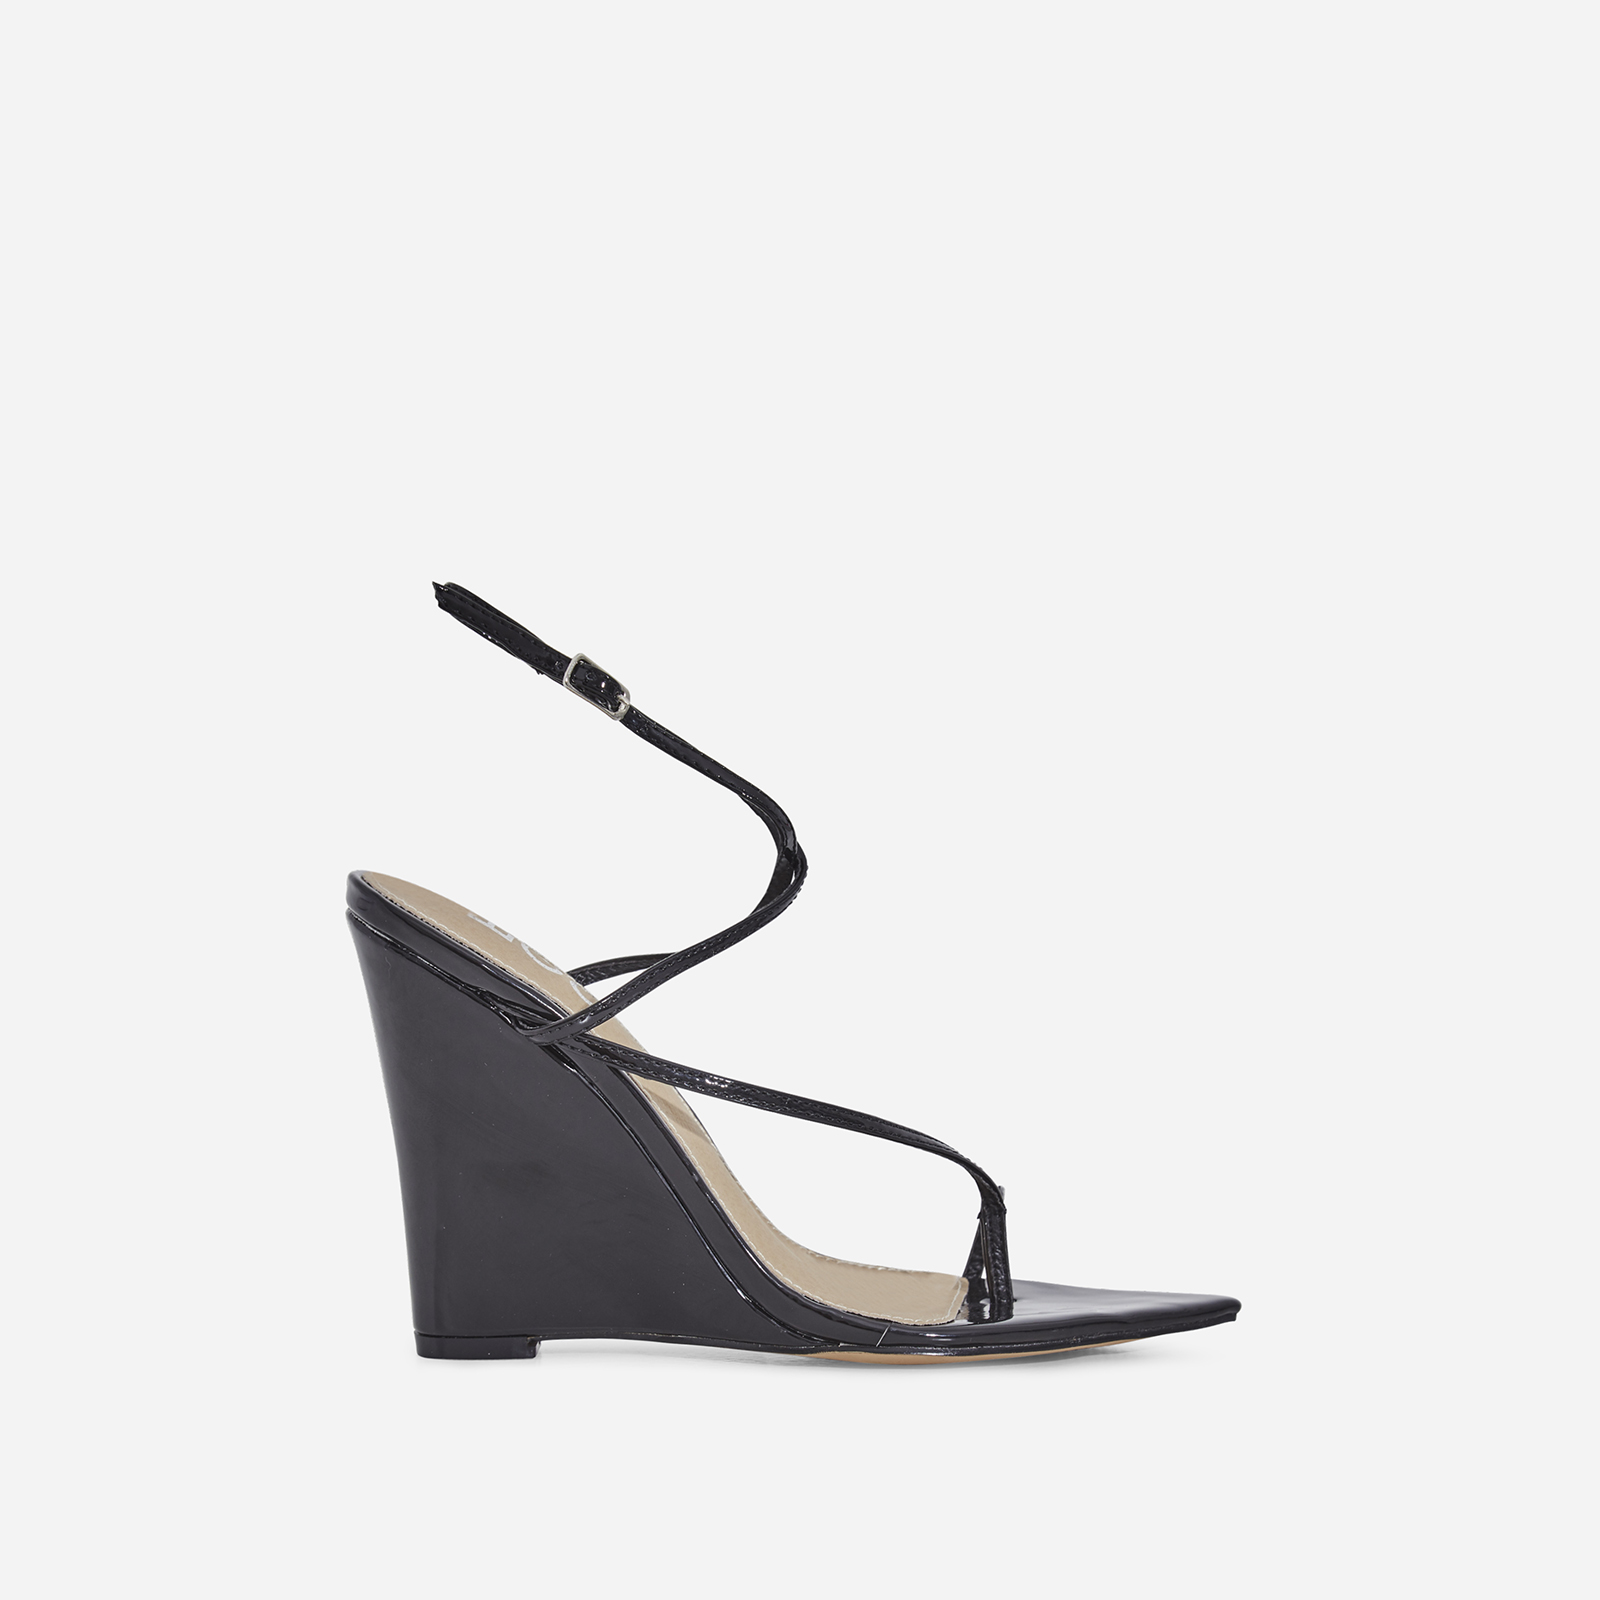 Melanie Toe Strap Wedge Heel In Black Patent